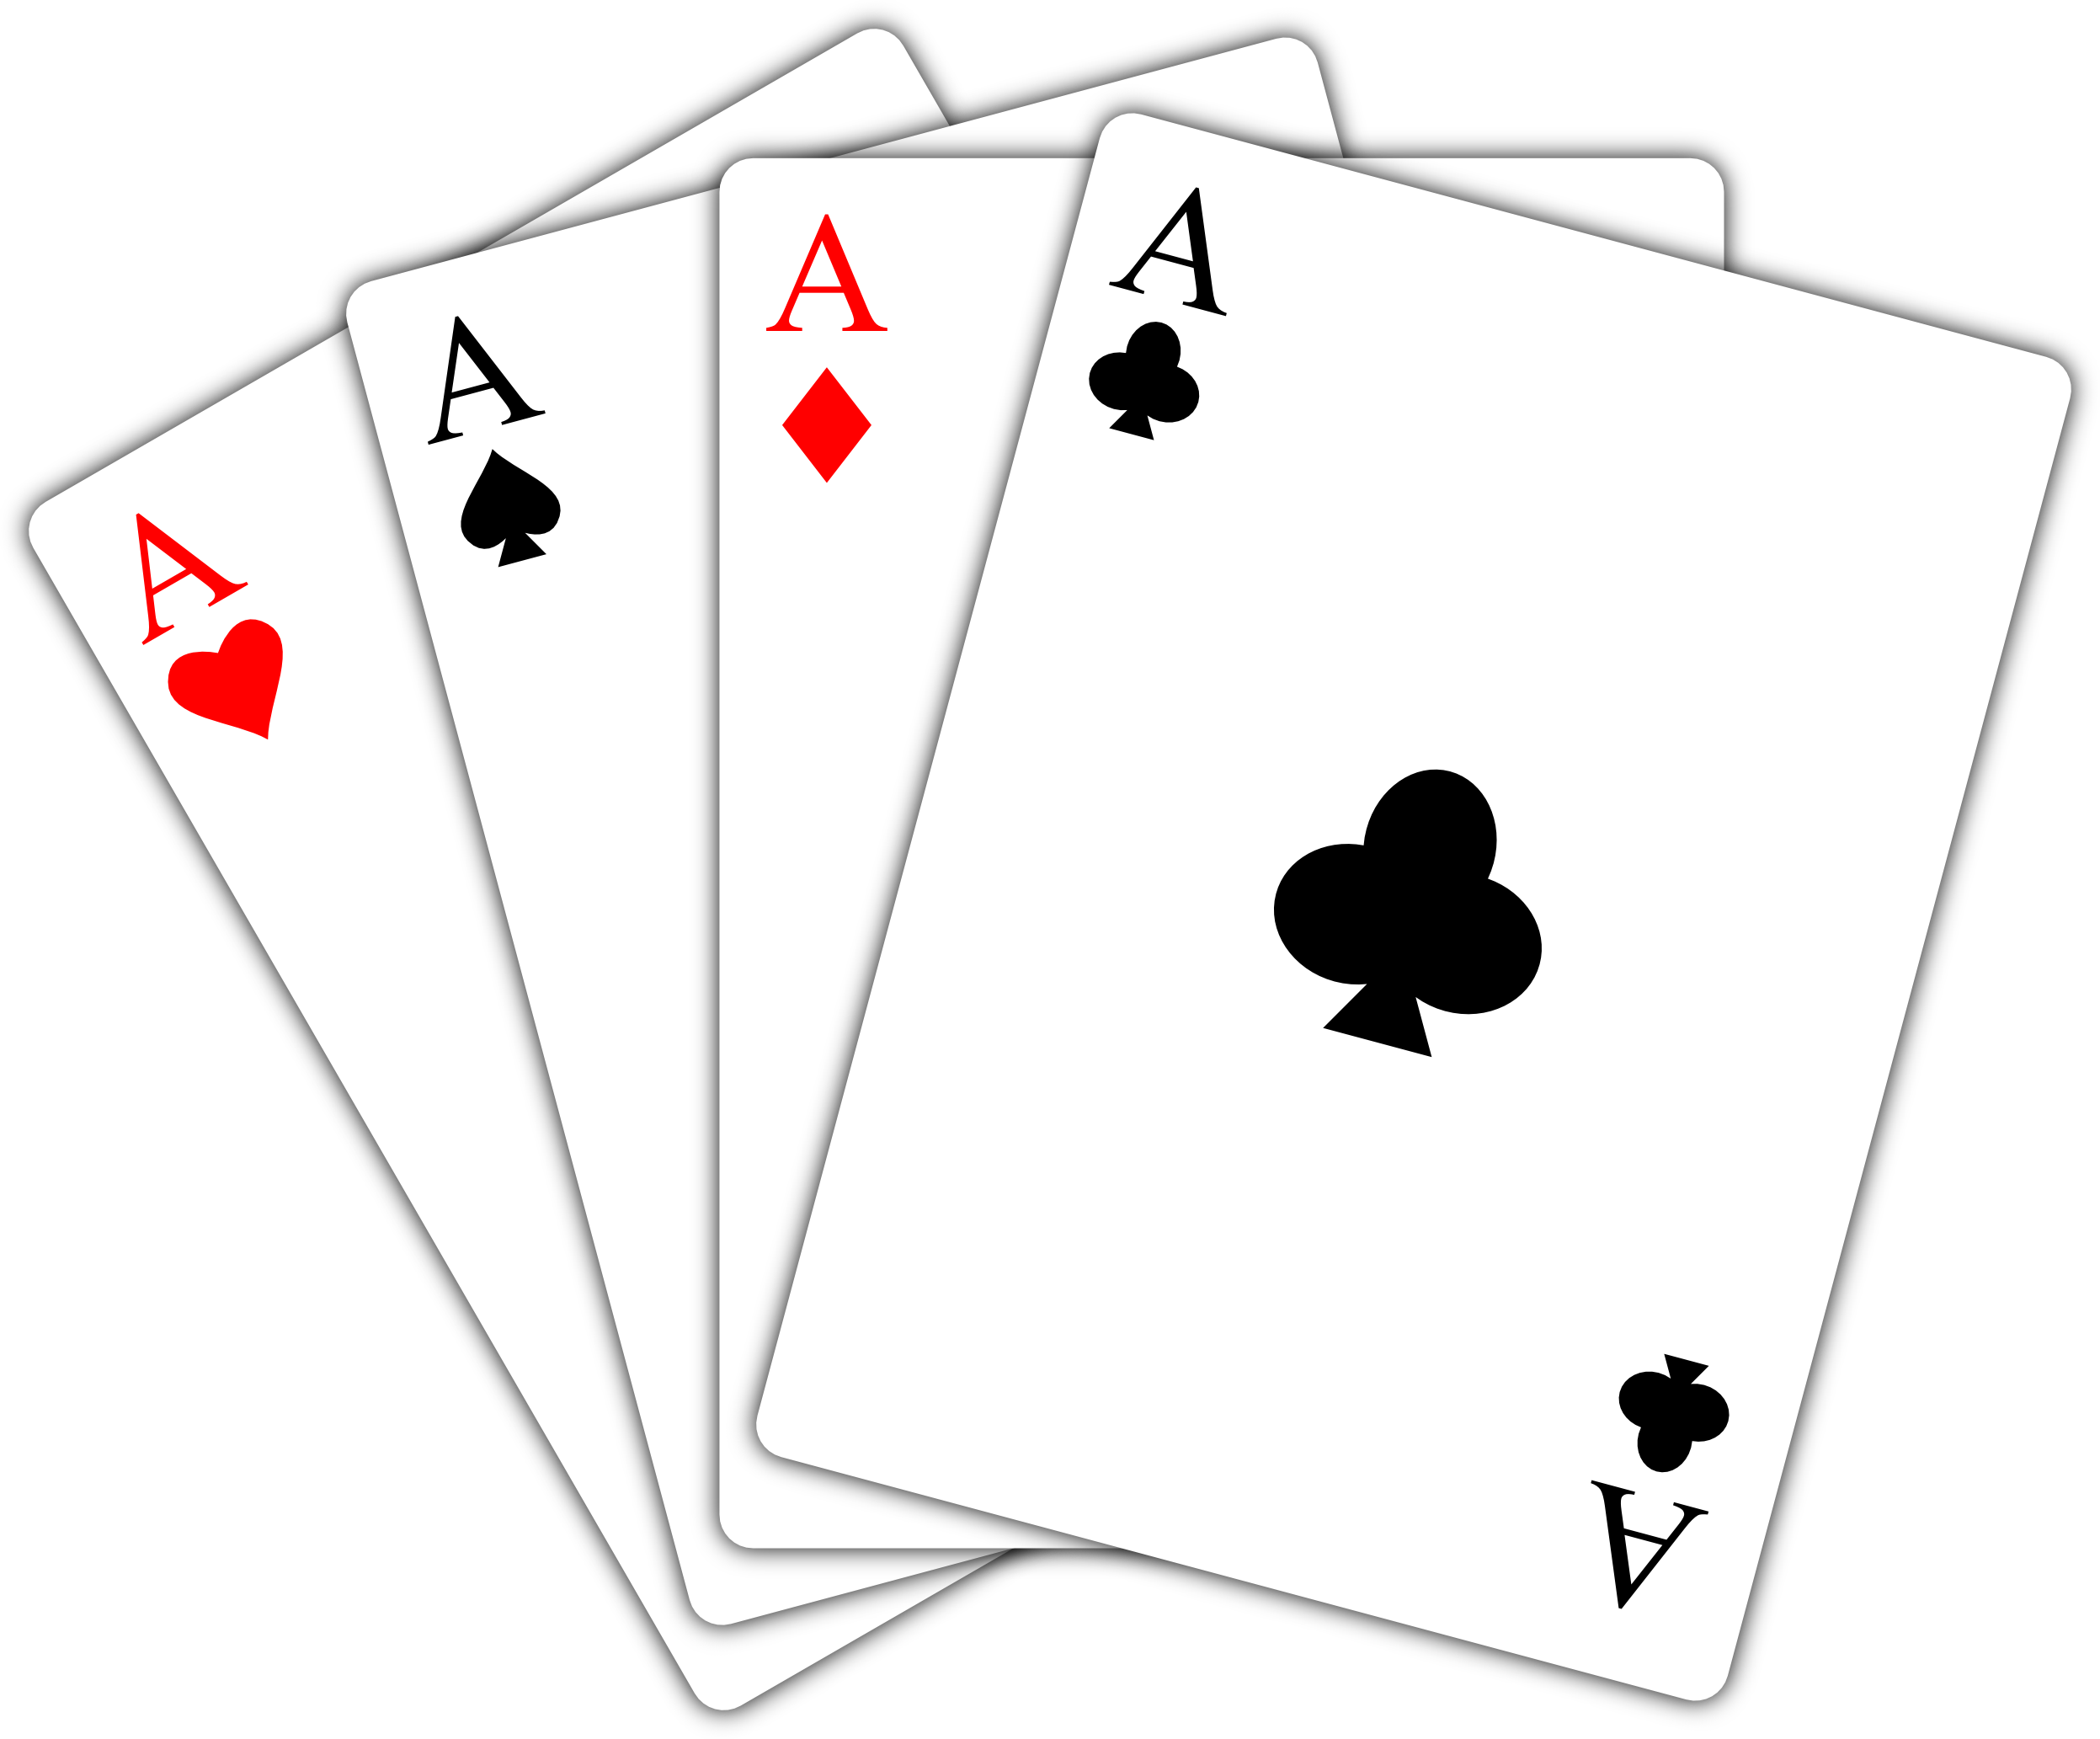 Cheating Contact Lenses In Delhi In 2020 Kings Card Game Ace Card Playing Cards